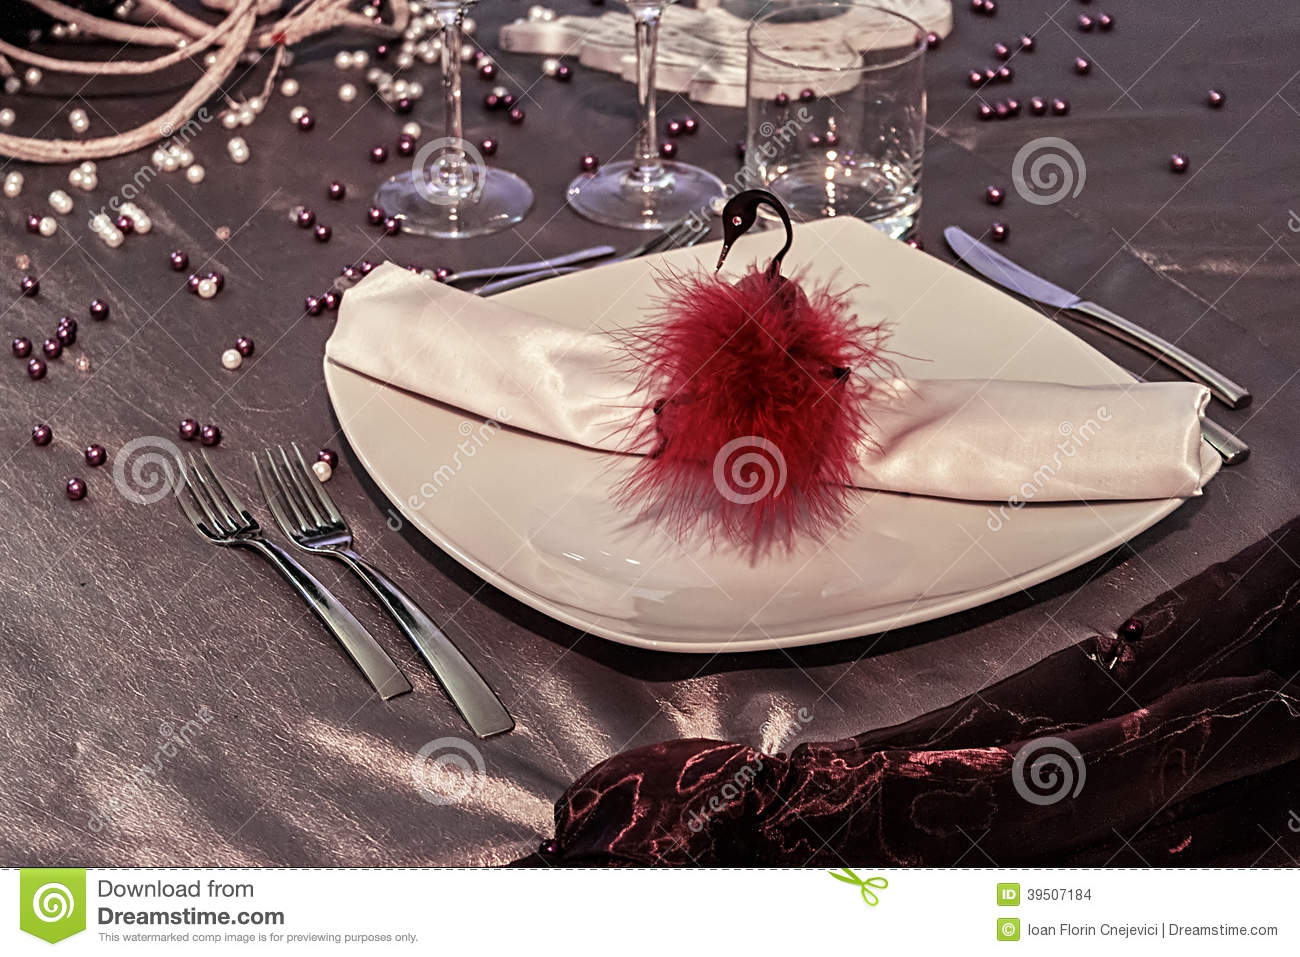 Arrangement for festive dinners - 5